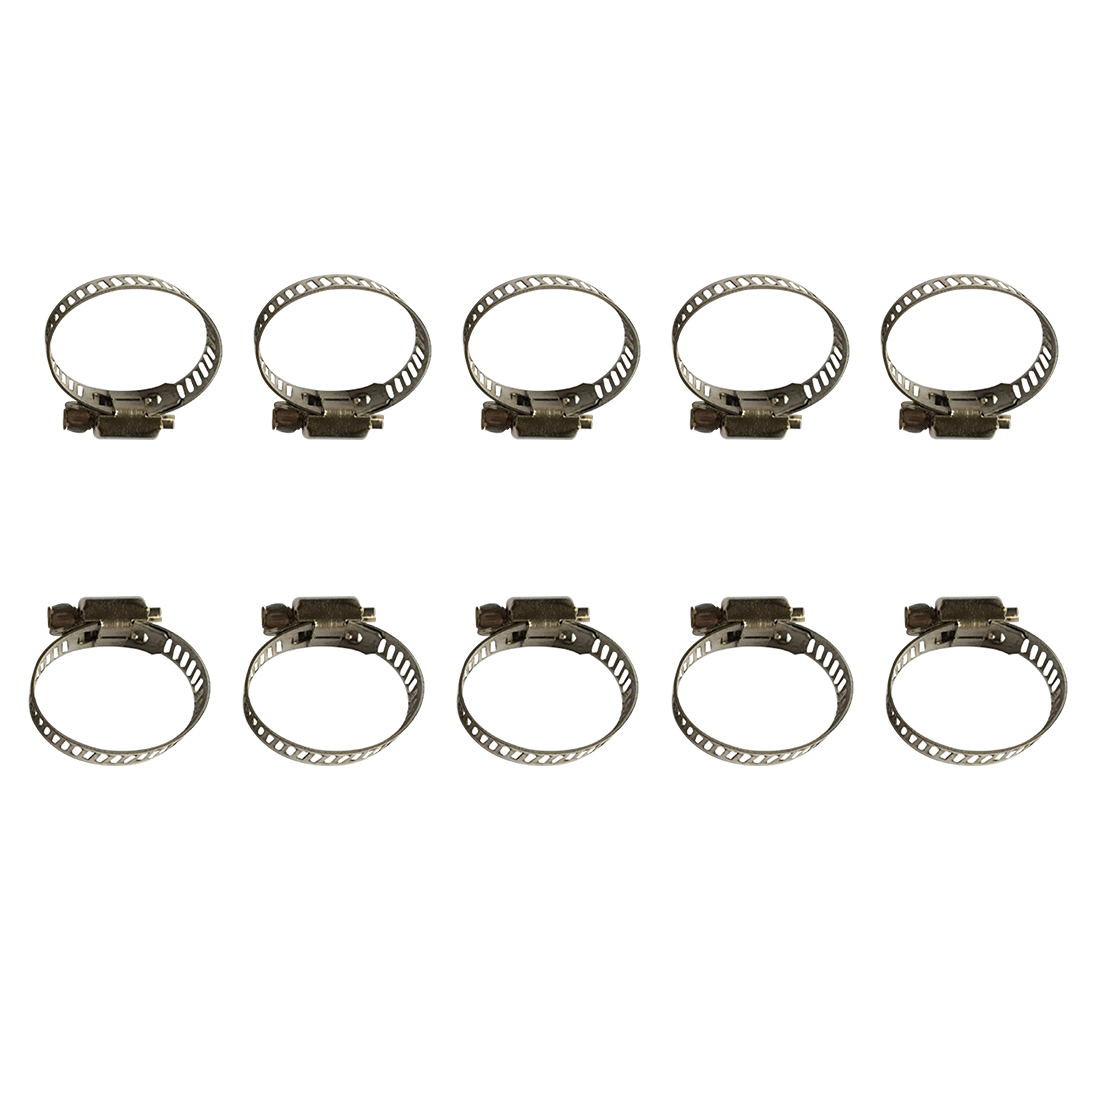 10Pcs Adjustable Stainless Steel Drive Hose Clamp Tri Clamp Fuel Line Pipe Worm Gear Clip Tube Fasterner Spring Clip 10pcs hose clamp double ears o clips clamp worm drive fuel water hose pipe clamps clips